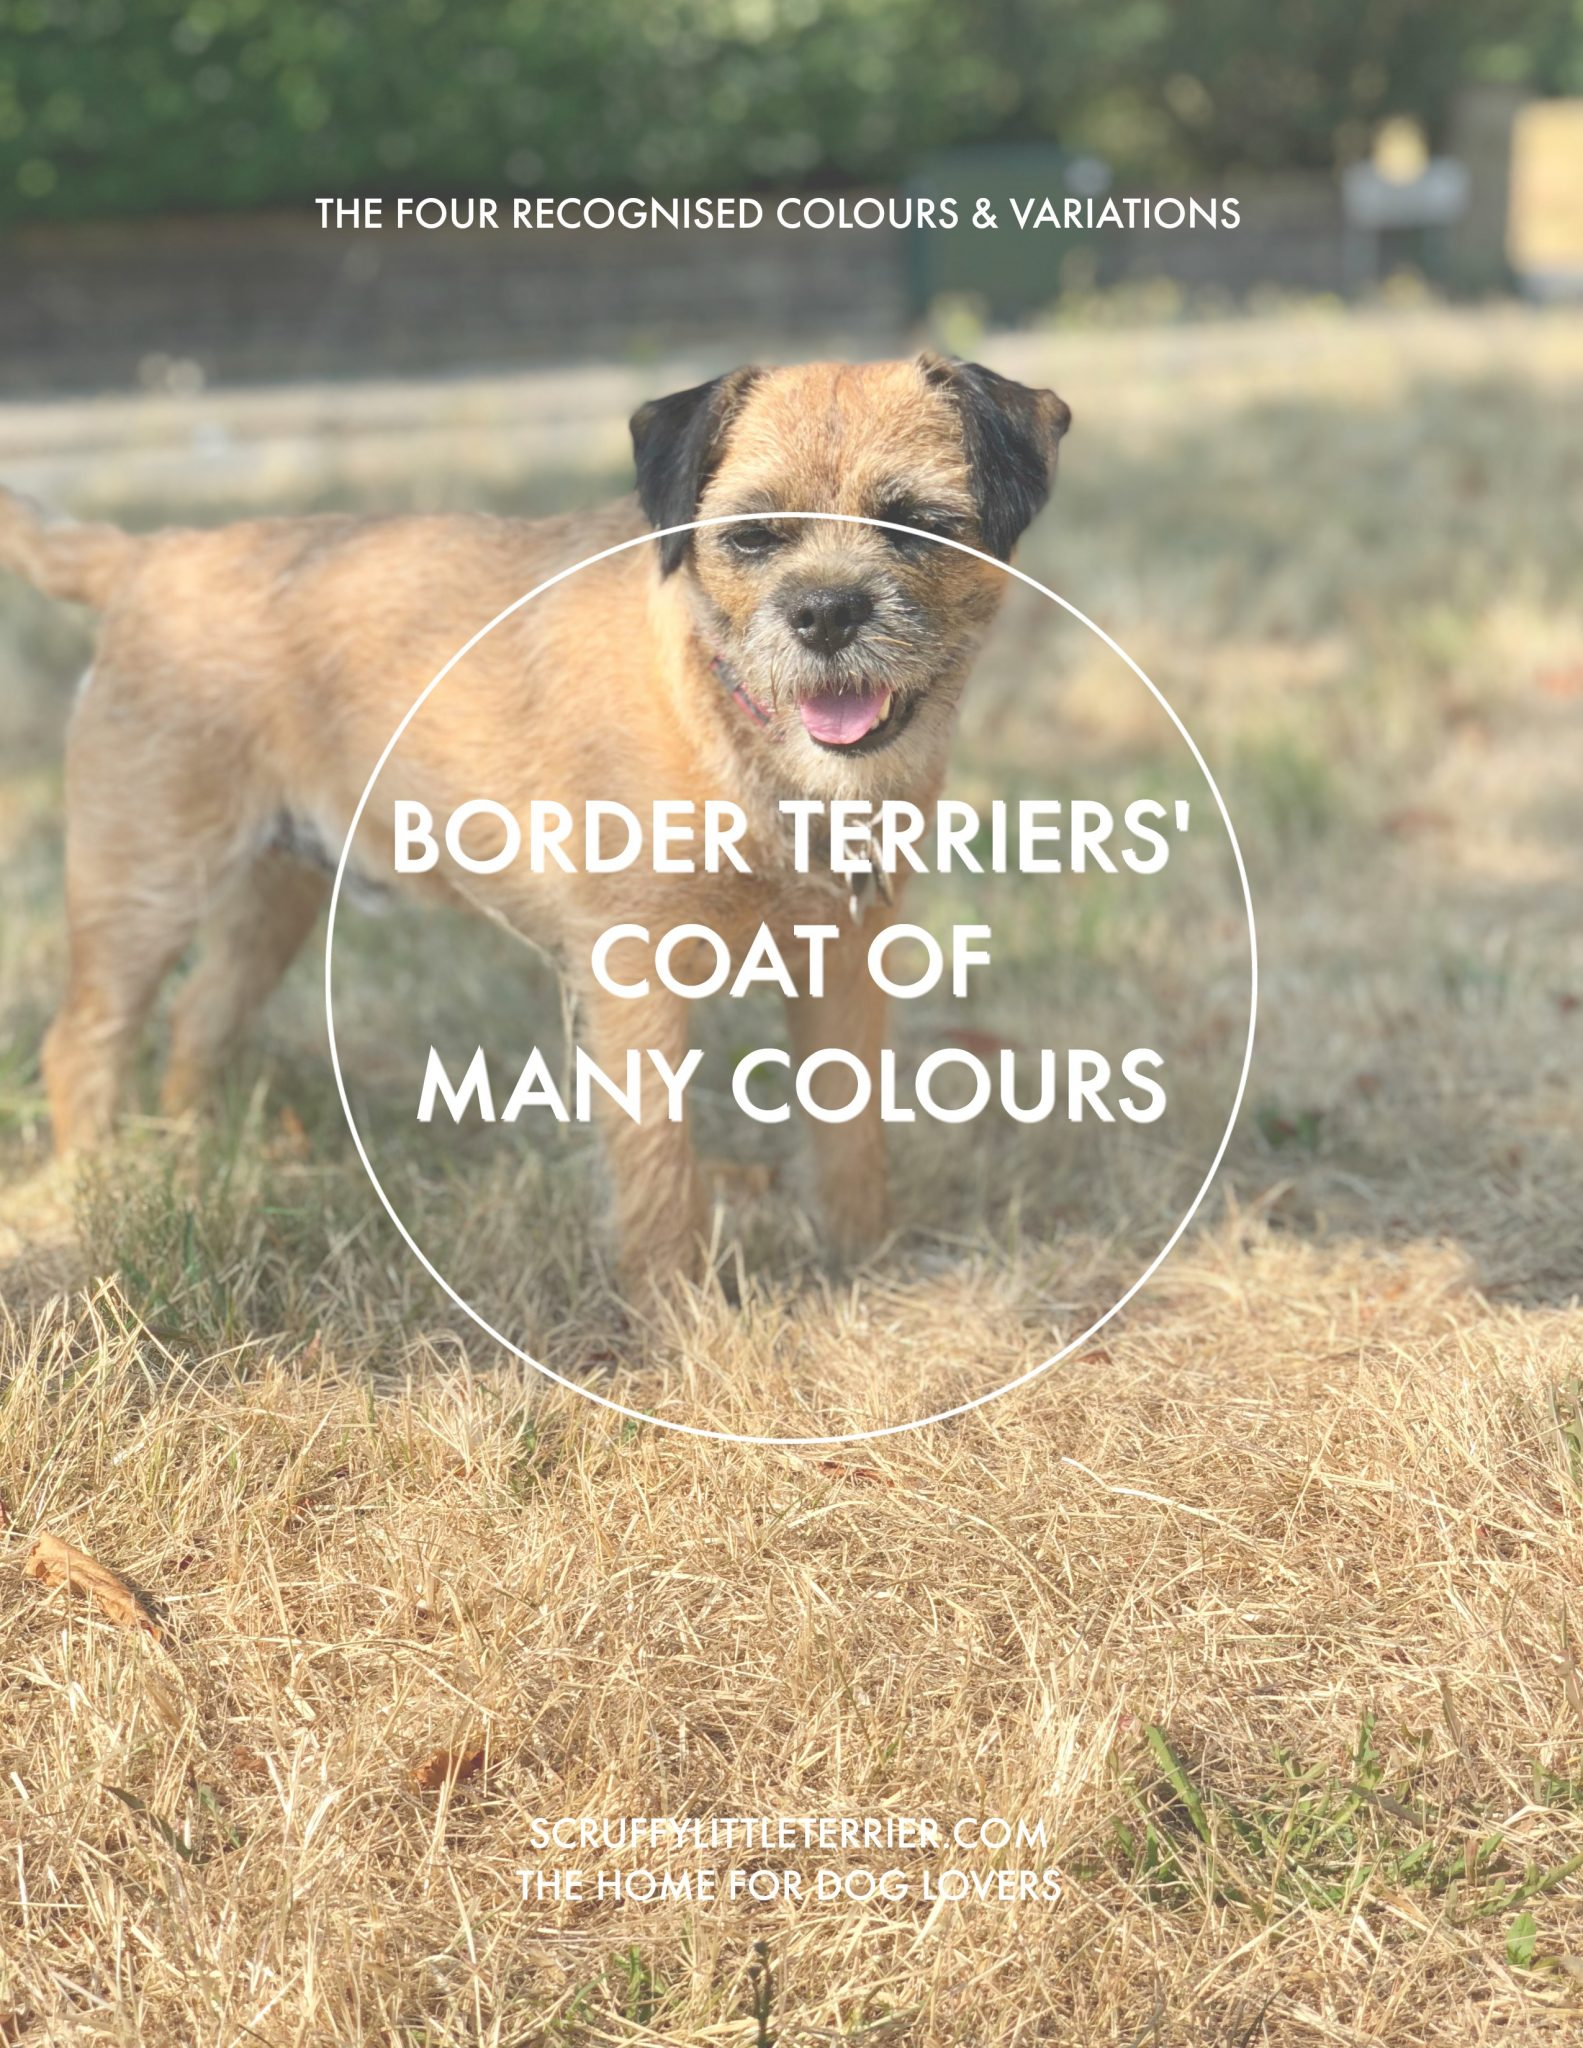 Border Terrier Coat Colours {Border Terrier Colours} #BorderTerrier #BlueTan #Grizzle #CoatColour www.scruffylittleterrier.com